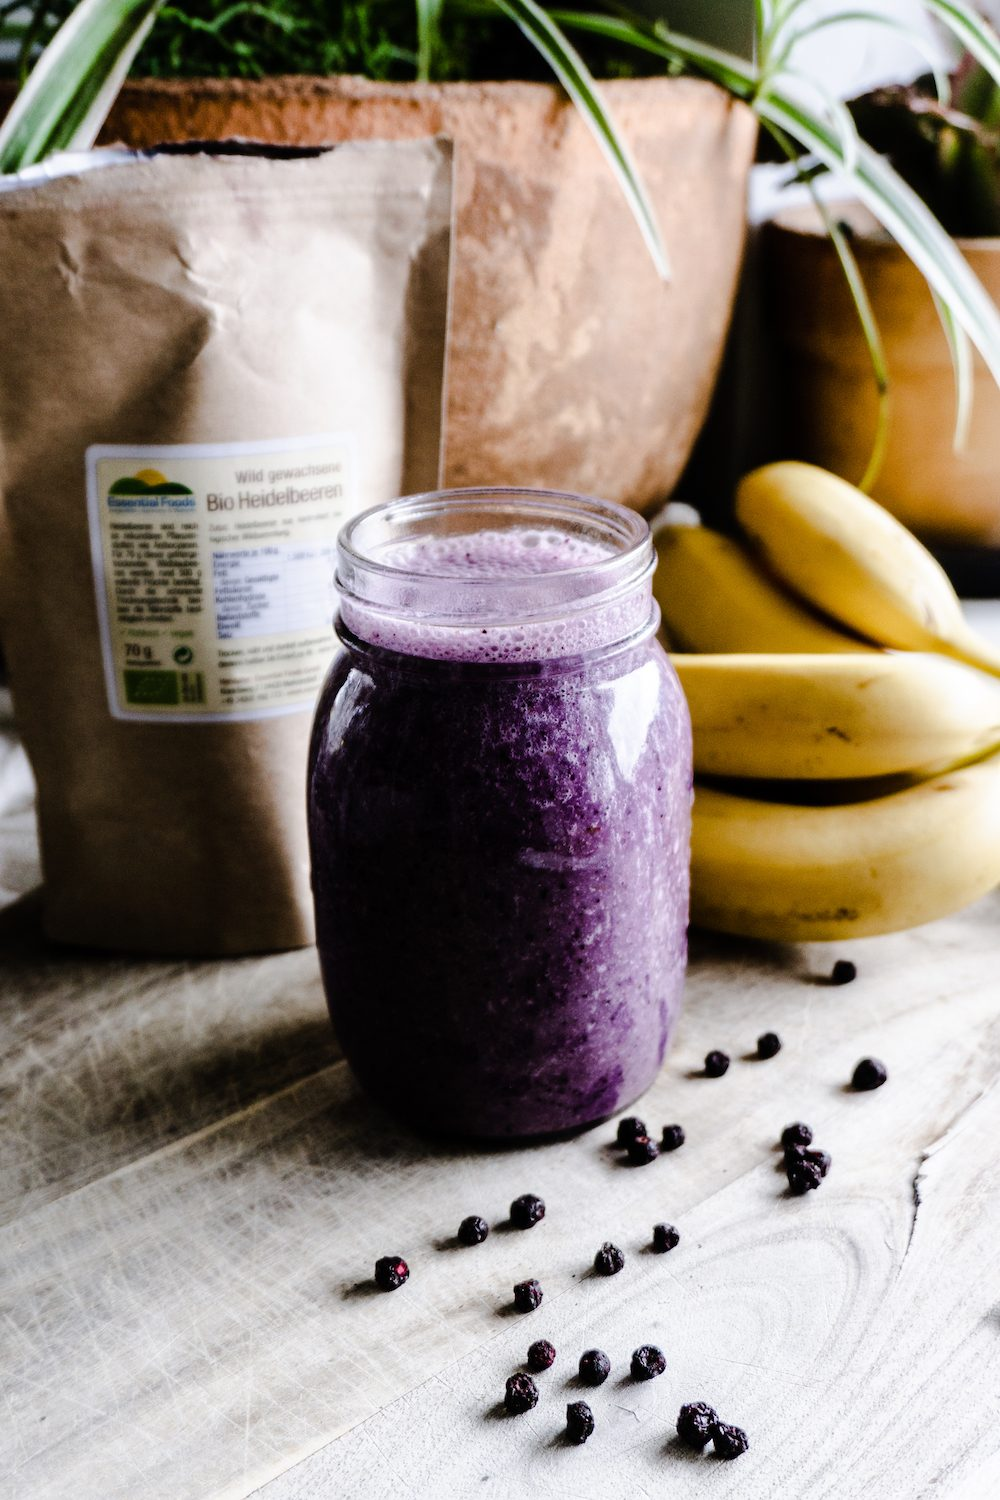 Blueberry-Banana-Coconut Smoothie